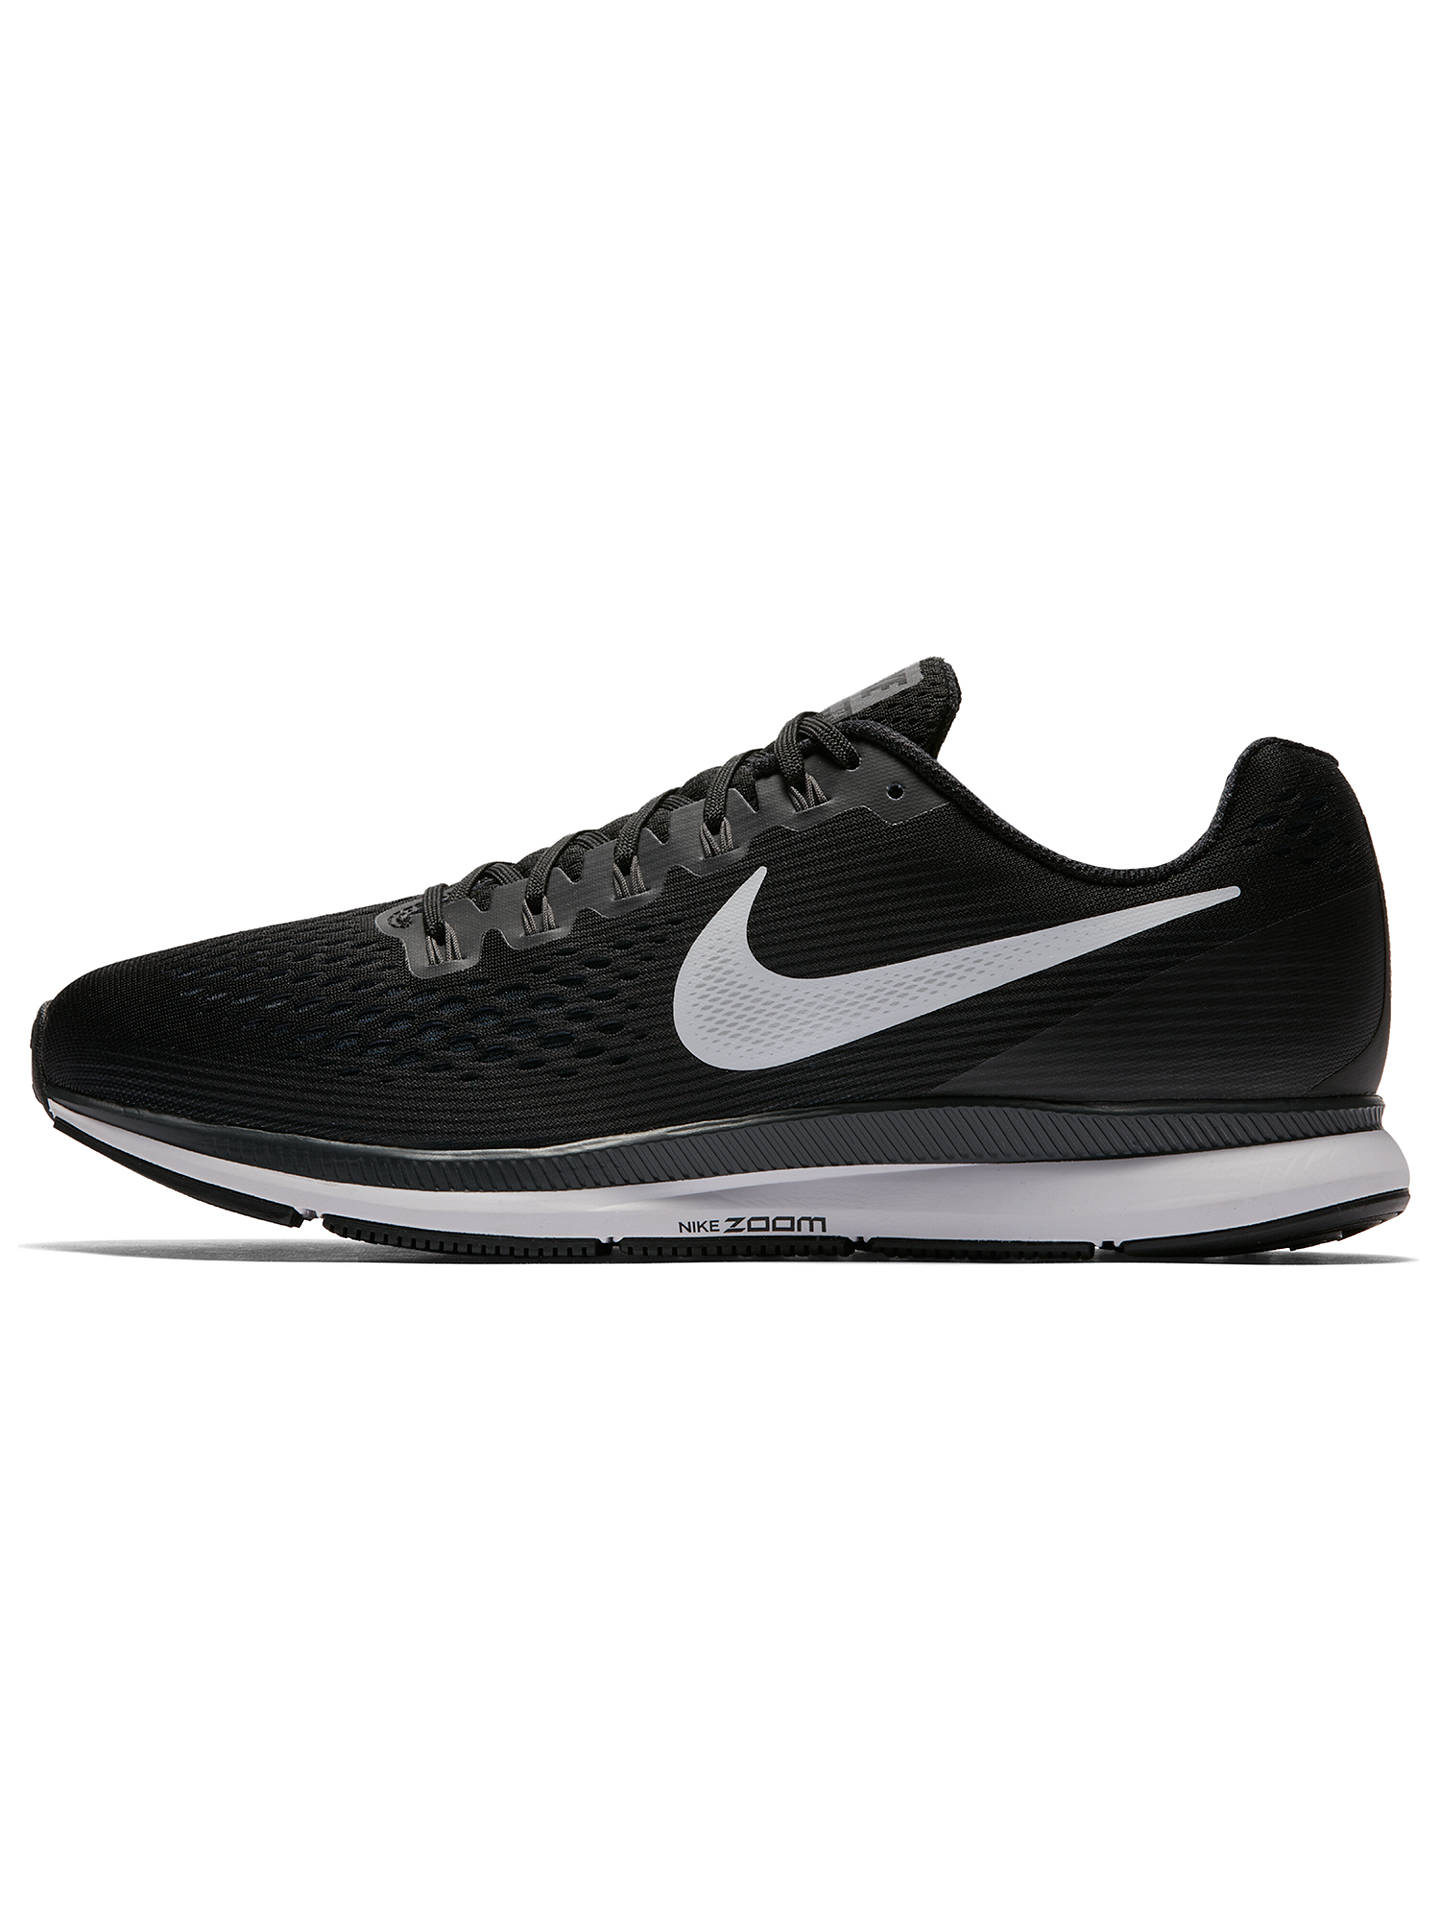 Zanahoria Inmundo suéter  Nike Air Zoom Pegasus 34 Men's Running Shoes, Black/White at John Lewis &  Partners